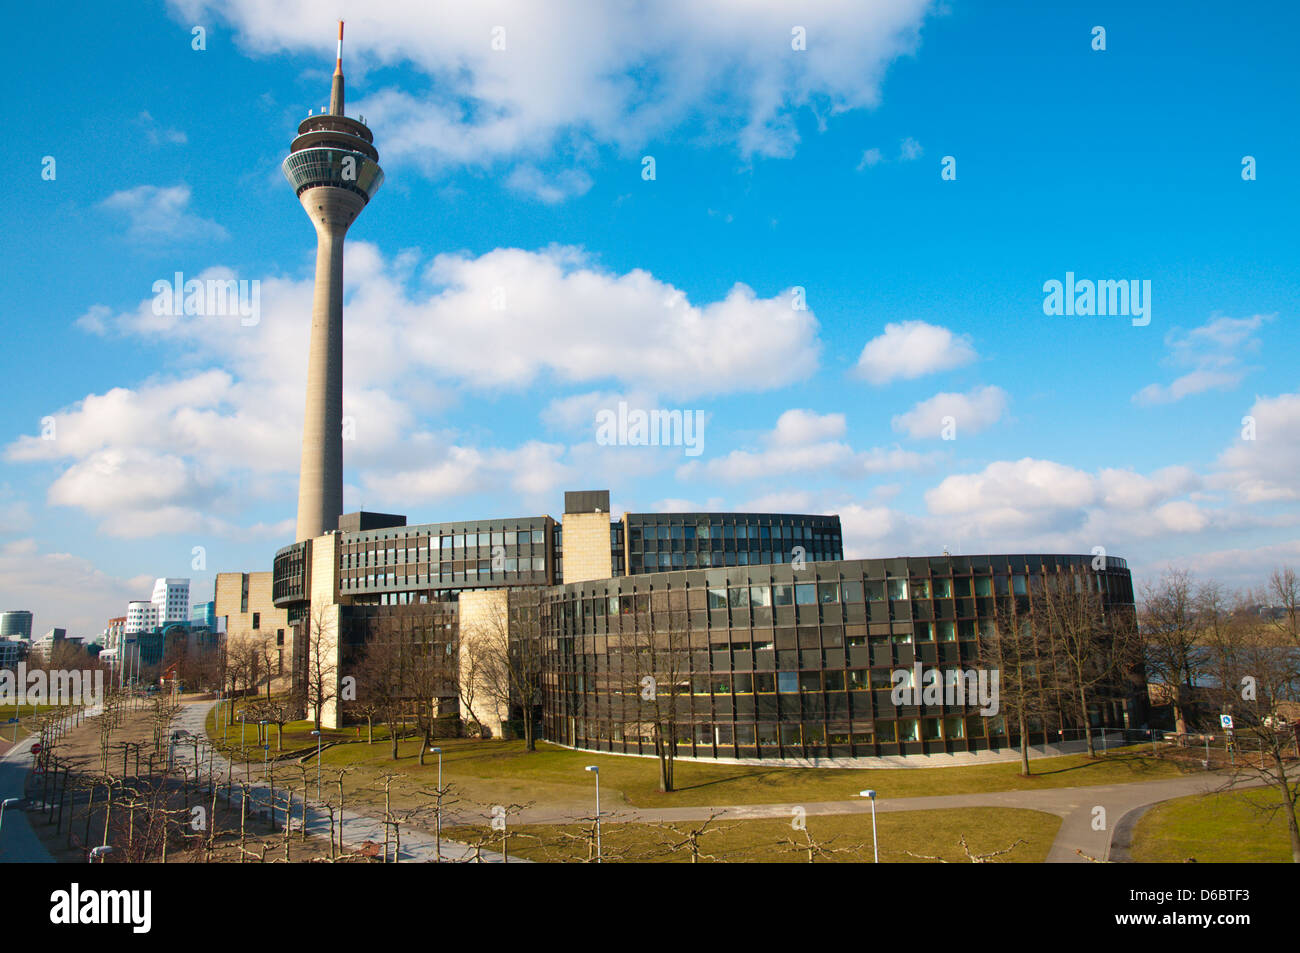 turm der rheinturm und landtag nordrhein westfalen montagehalle d sseldorf stadt nordrhein. Black Bedroom Furniture Sets. Home Design Ideas